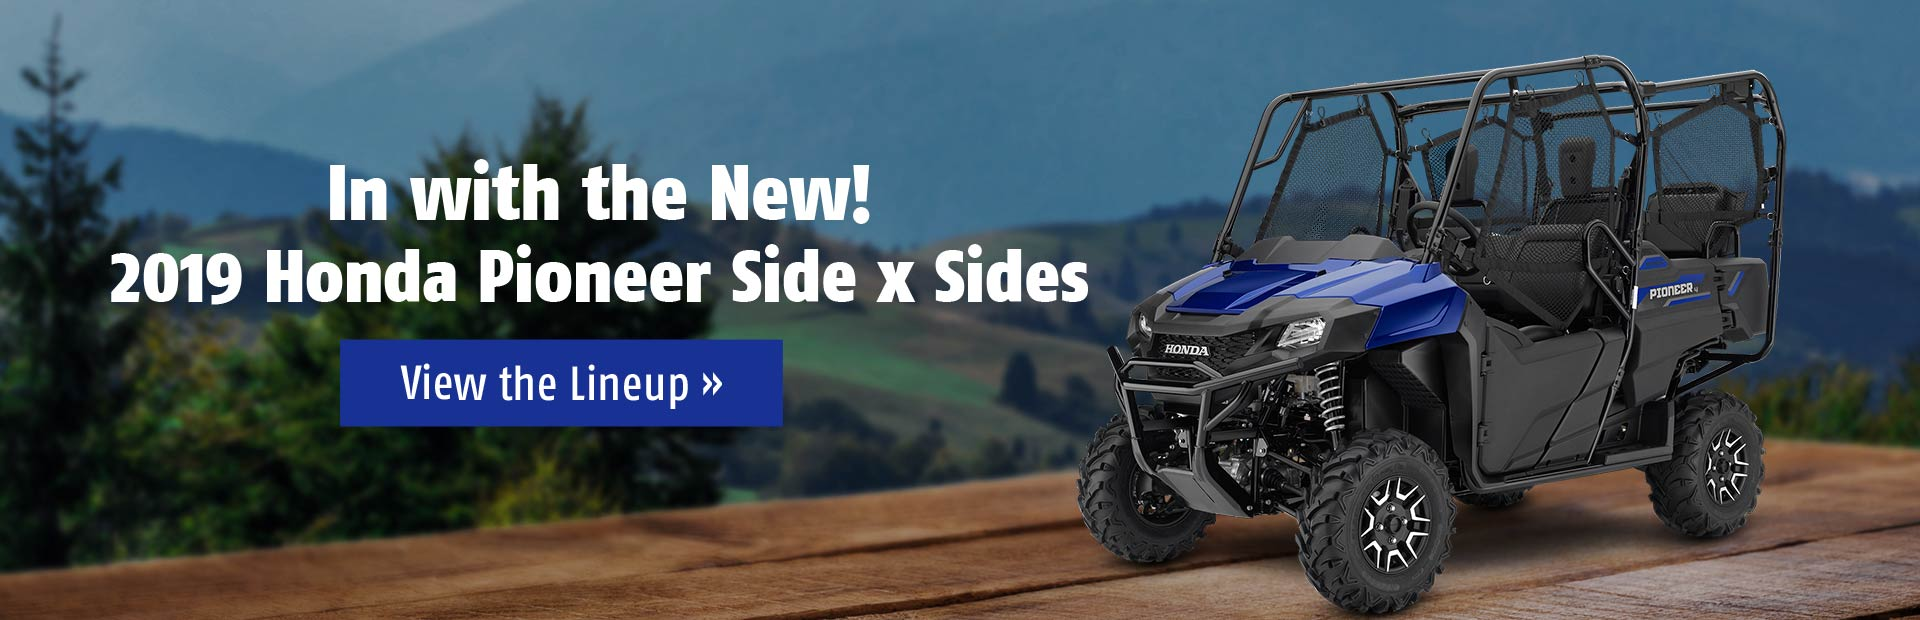 2019 Honda Pioneer Side x Sides: Click here to view the lineup.